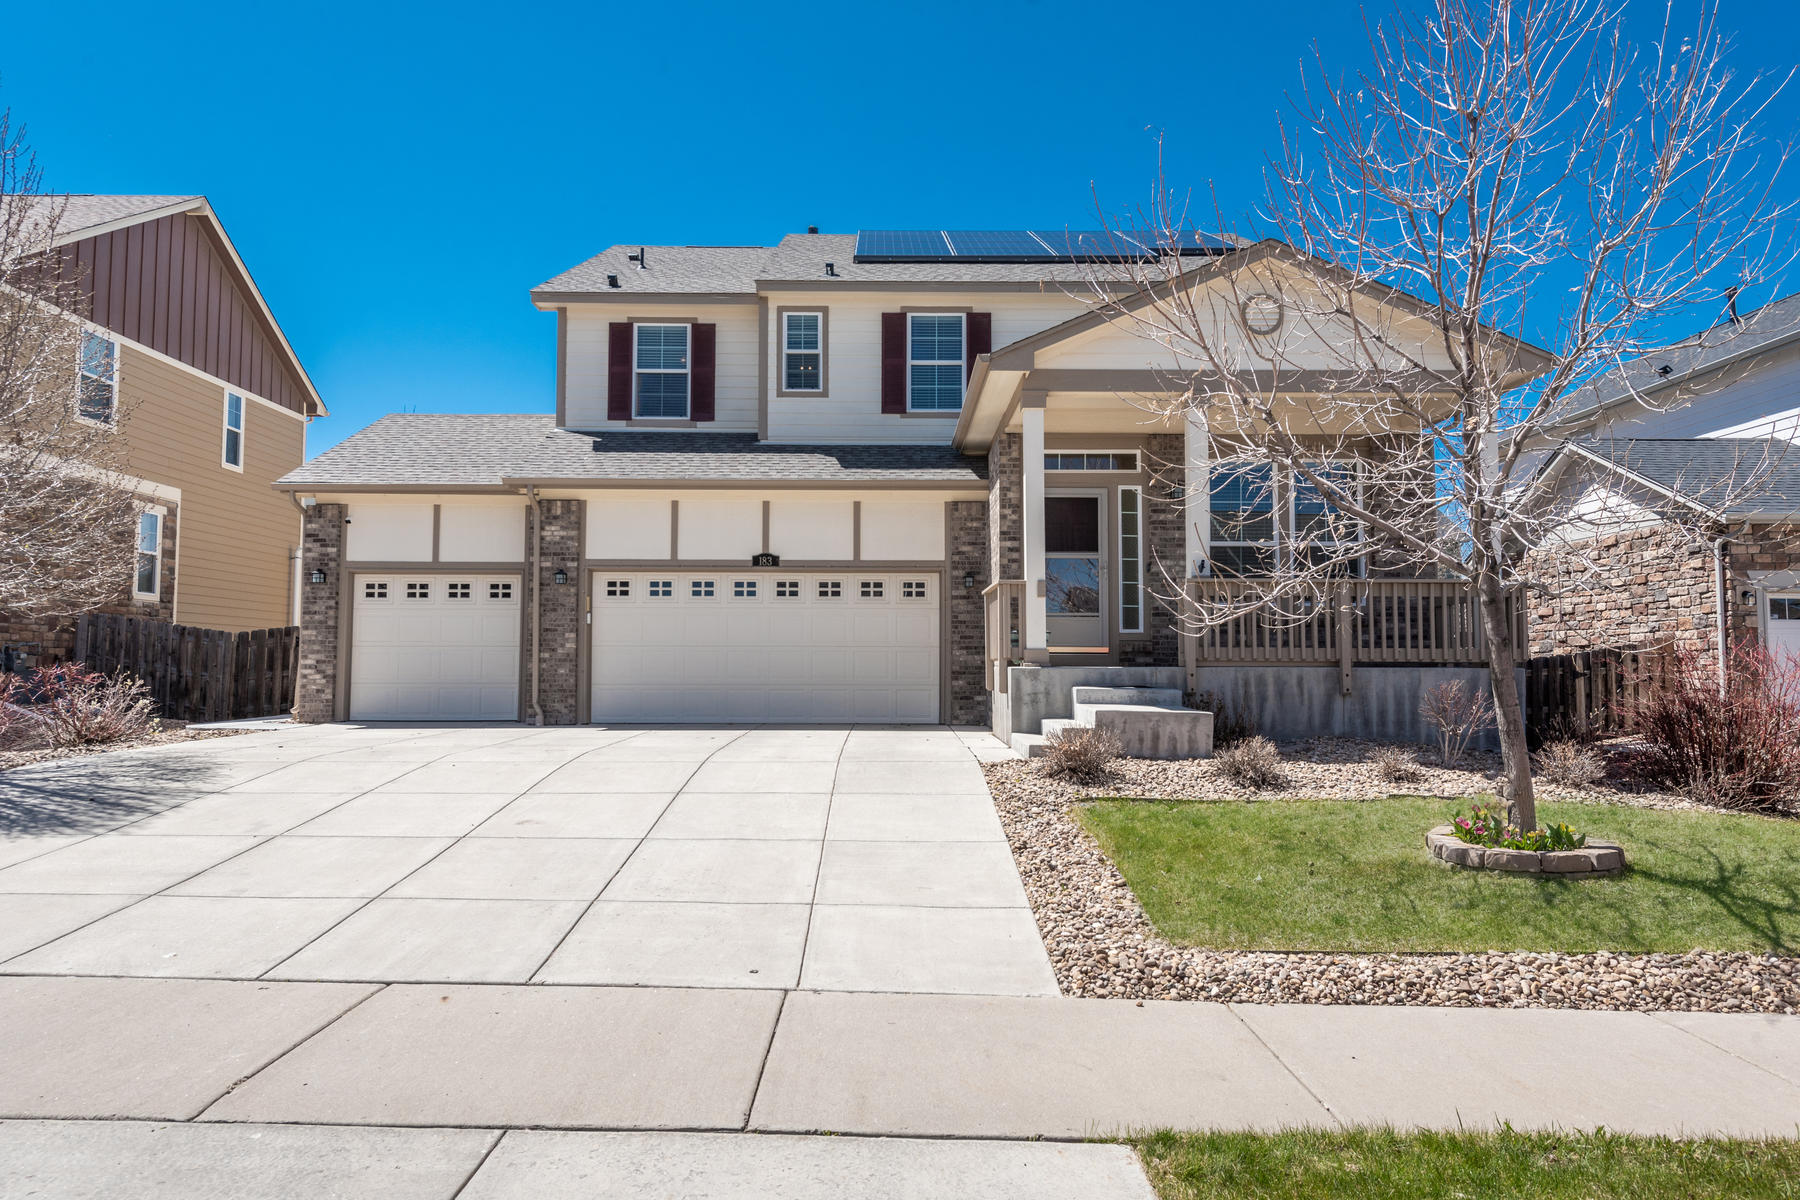 Single Family Homes for Sale at Bright & Open 4 Bedroom on a Quiet Street in Adonea 183 N Muscadine Court, Aurora, Colorado 80018 United States